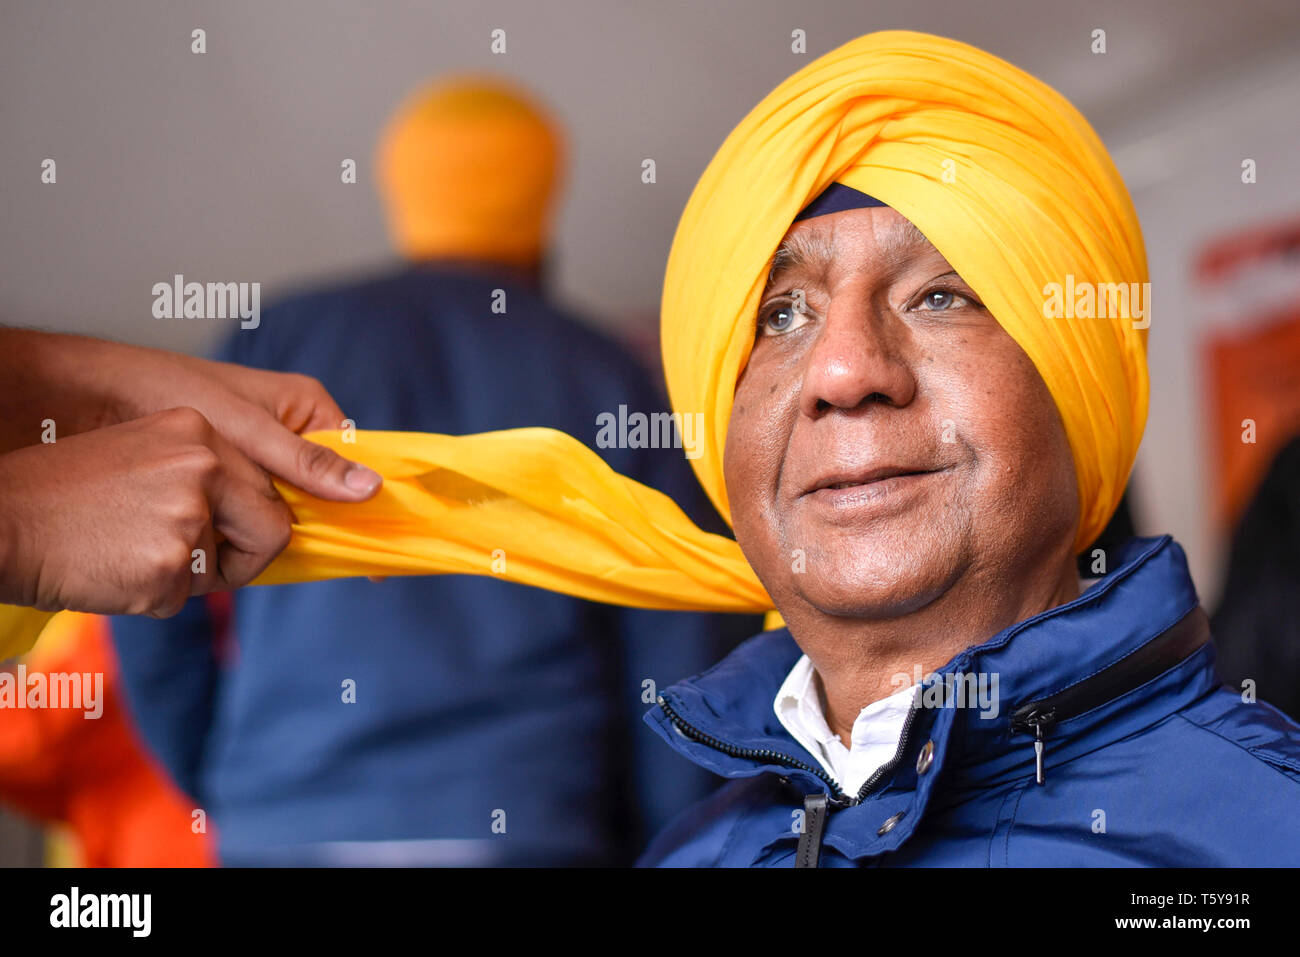 London, UK.  27 April 2019.  A man has a turban tied during the festival of Vaisakhi in Trafalgar Square, hosted by the Mayor of London.  For Sikhs and Punjabis, the festival celebrates the spring harvest and commemorates the founding of the Khalsa community over 300 years ago.  Credit: Stephen Chung / Alamy Live News - Stock Image